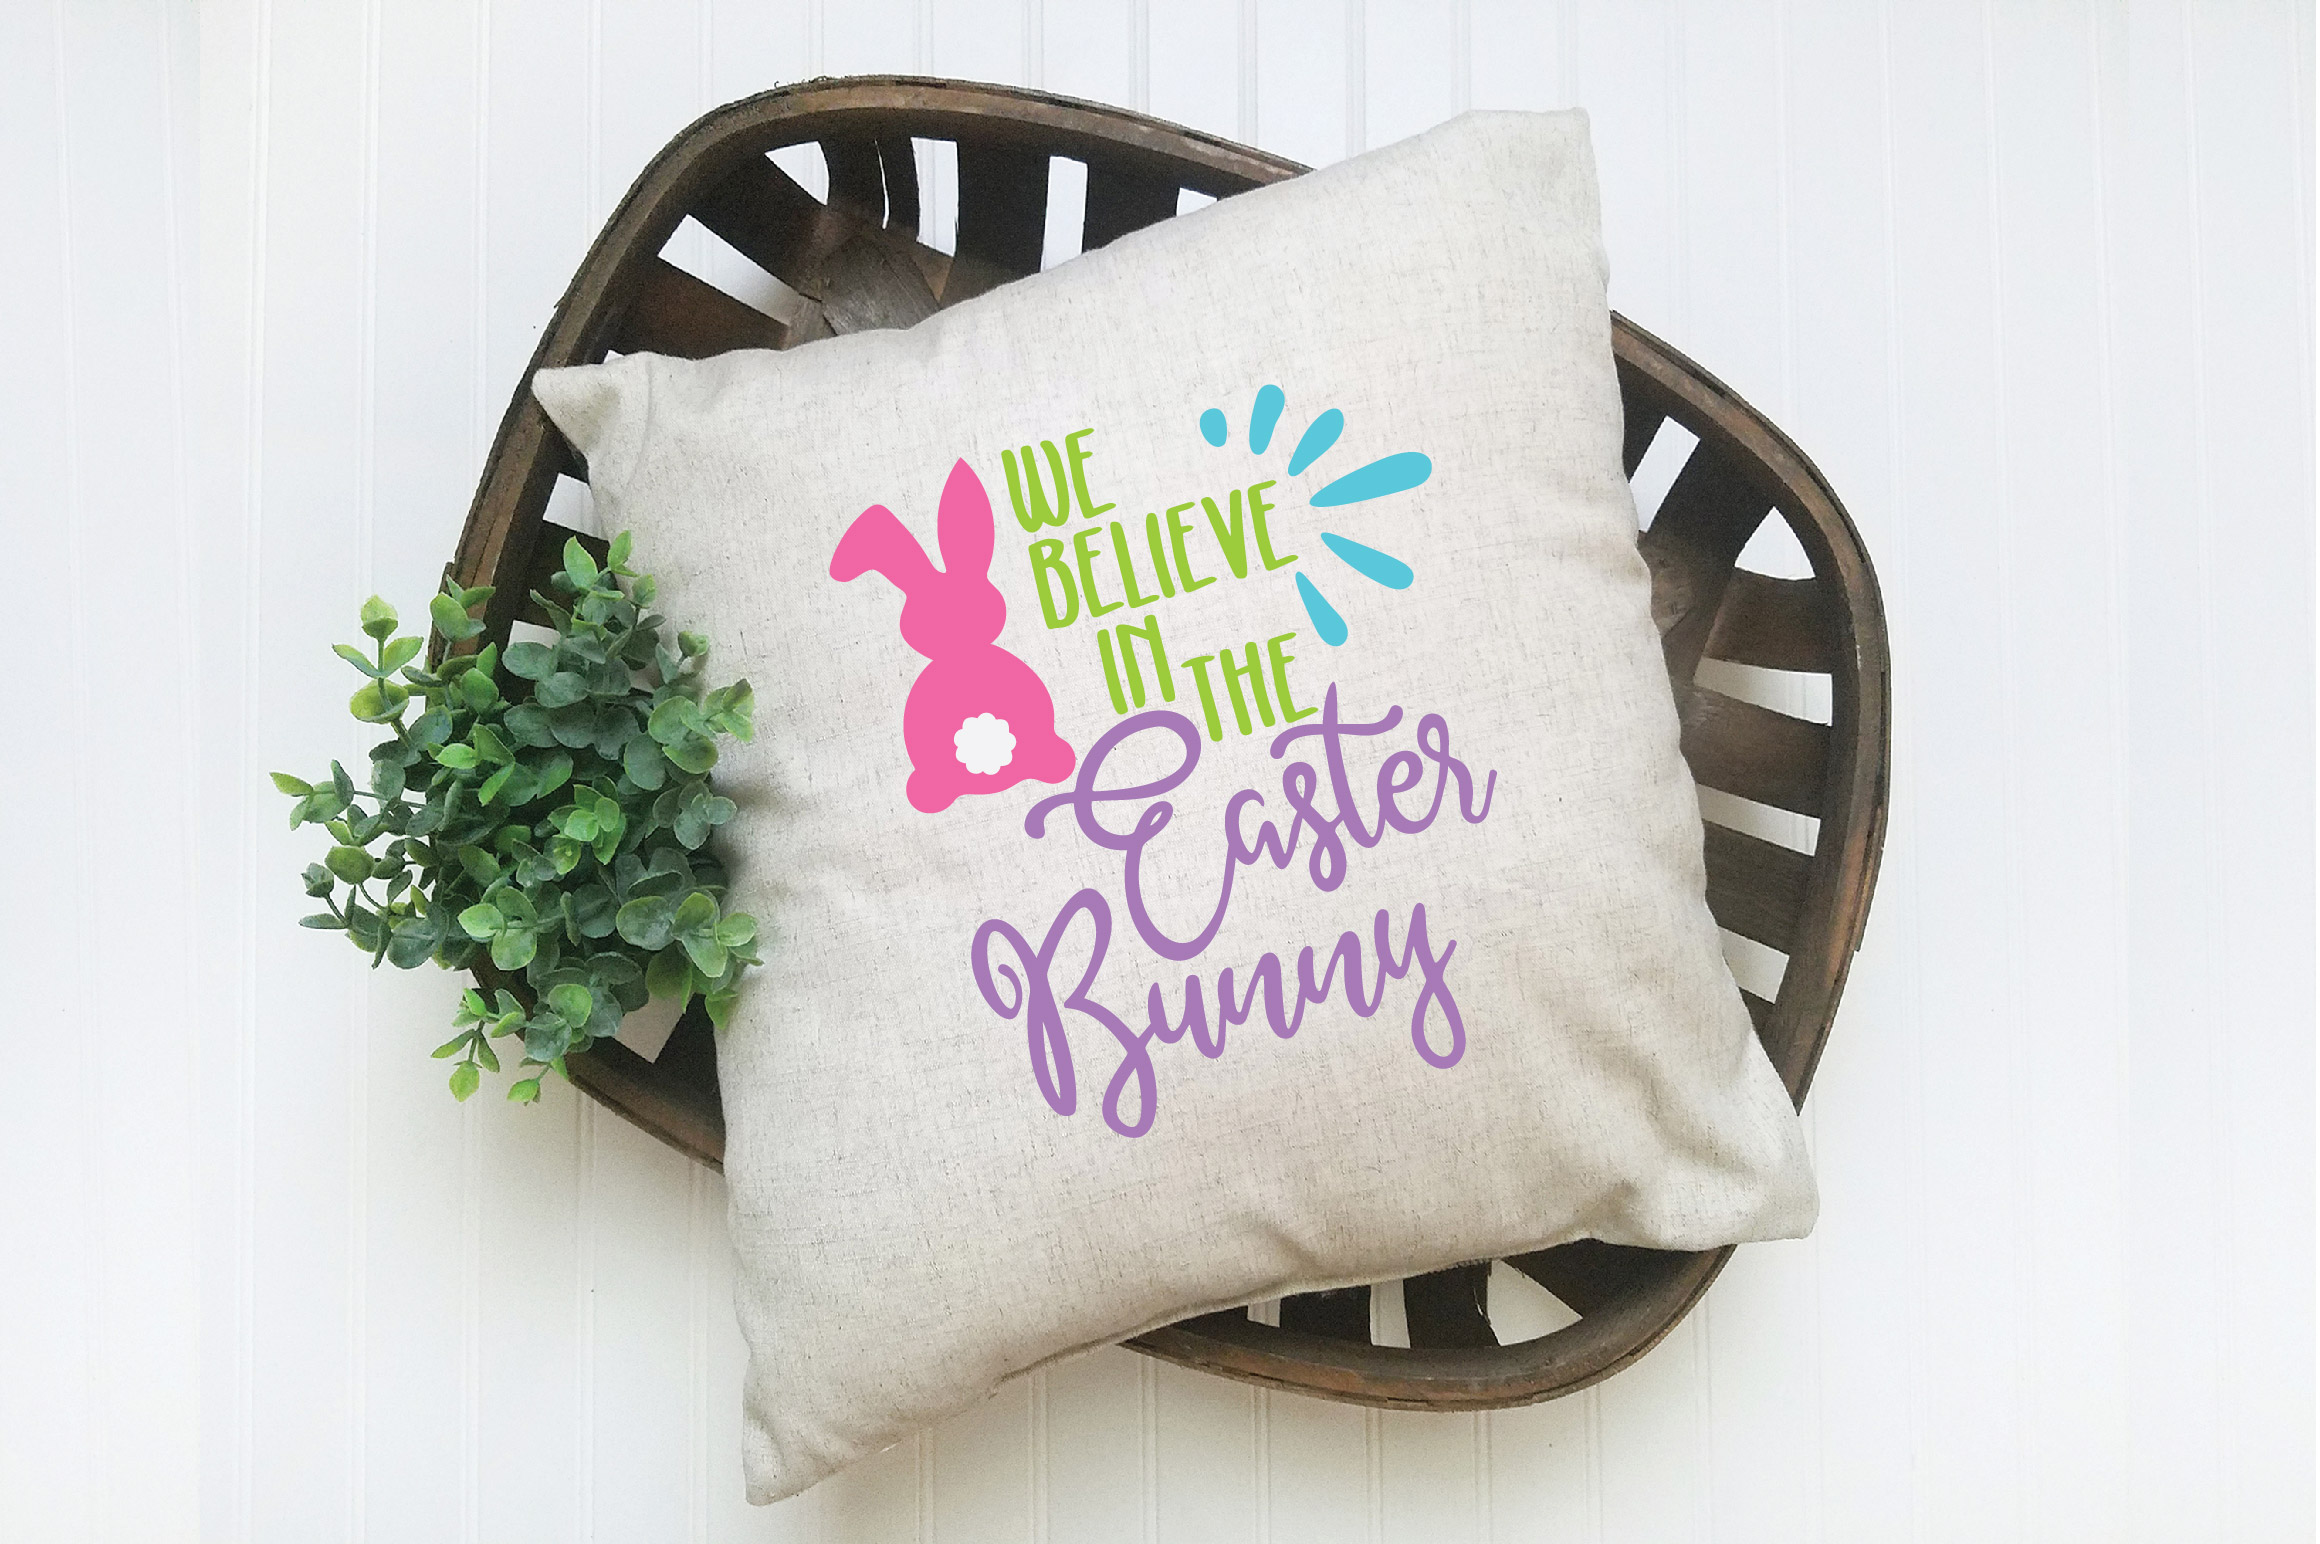 Easter SVG Cut File - We Believe in the Easter Bunny SVG DXF example image 3